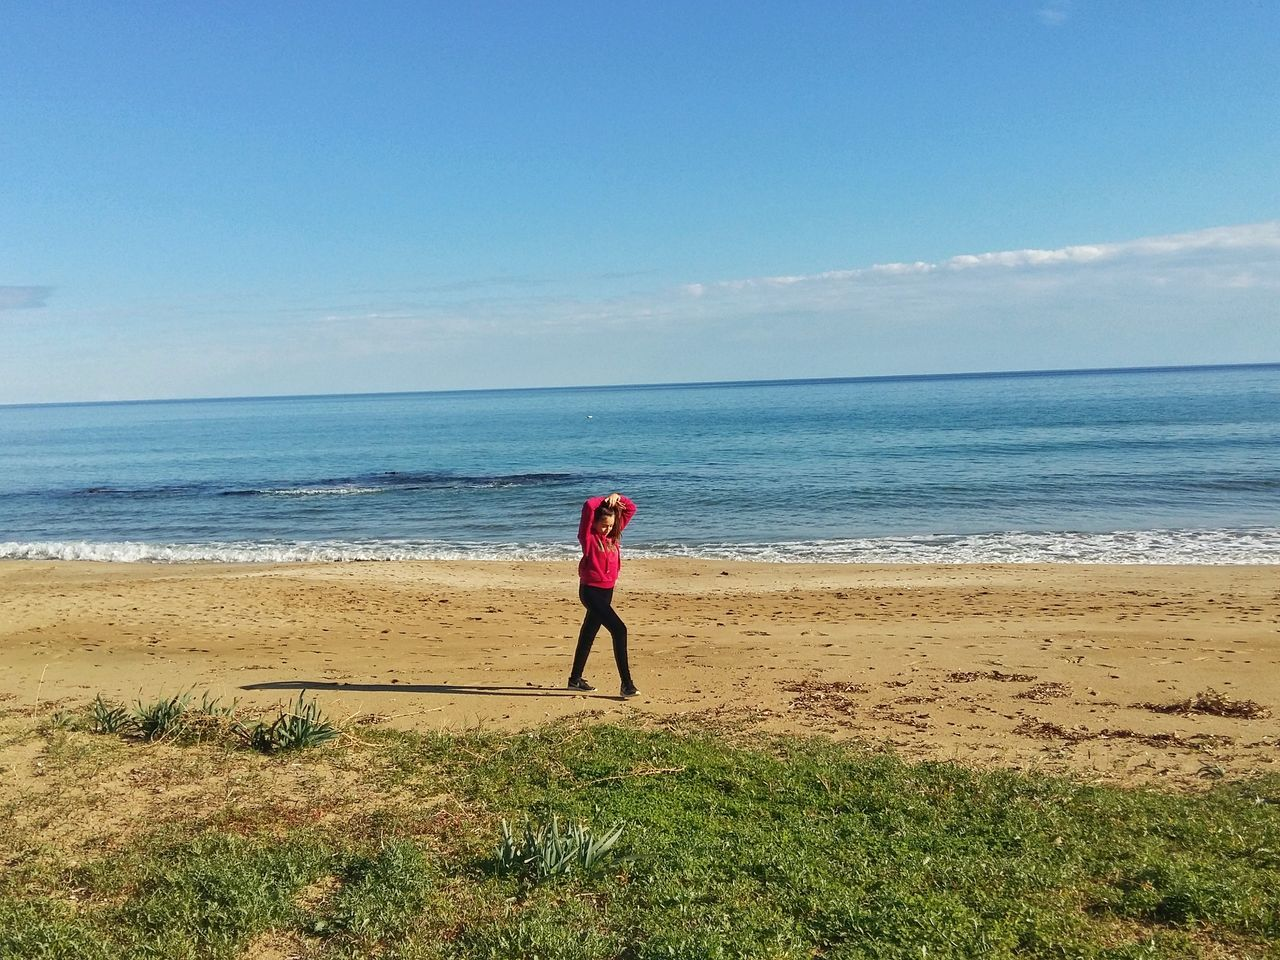 Sea Full Length Beach Horizon Over Water Rear View One Person Healthy Lifestyle Outdoors Sky People Water Real People Day Nature One Woman Only Only Women Beauty In Nature Adults Only Self Improvement Adult